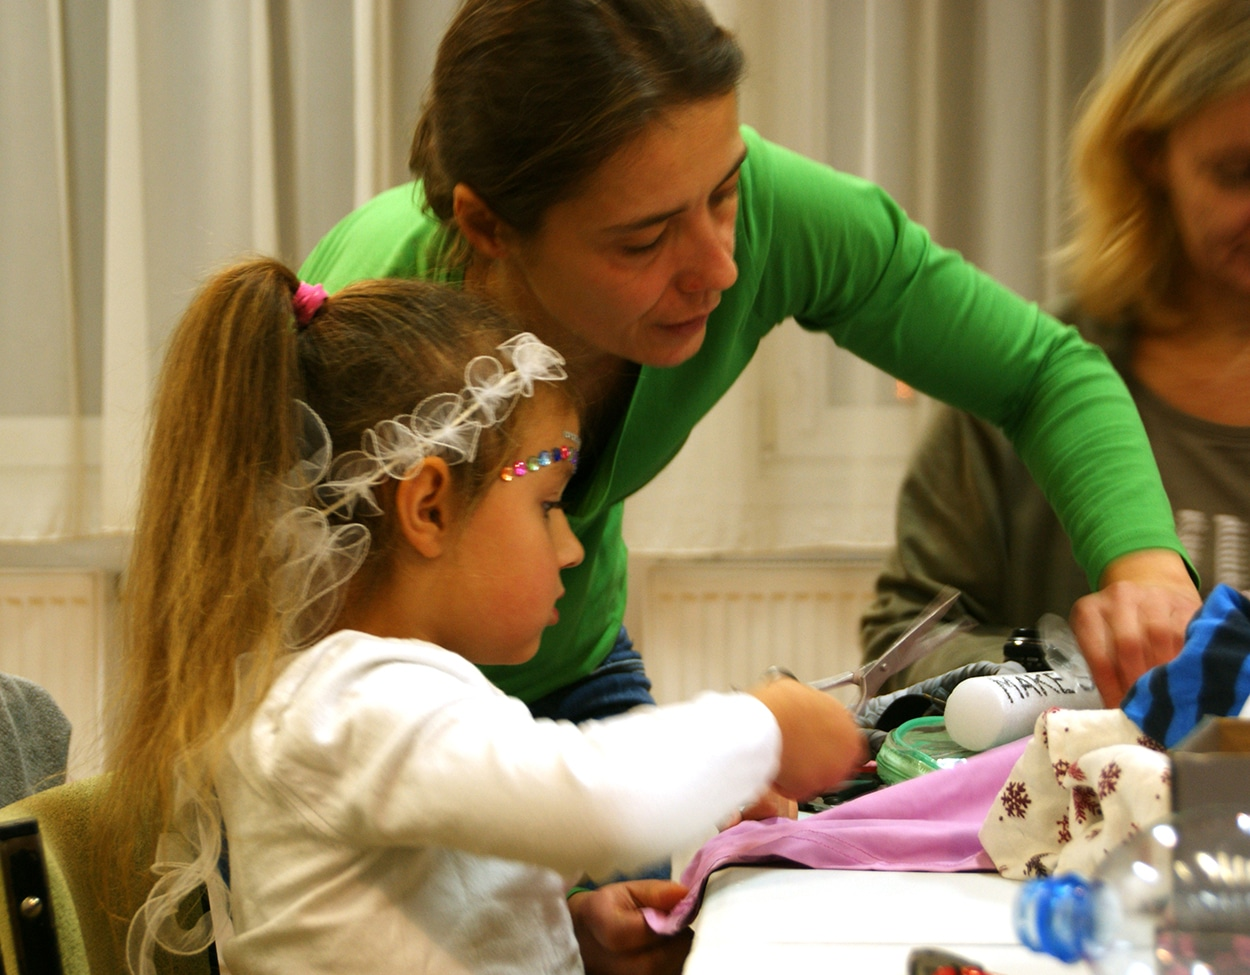 woman and girl doing crafts